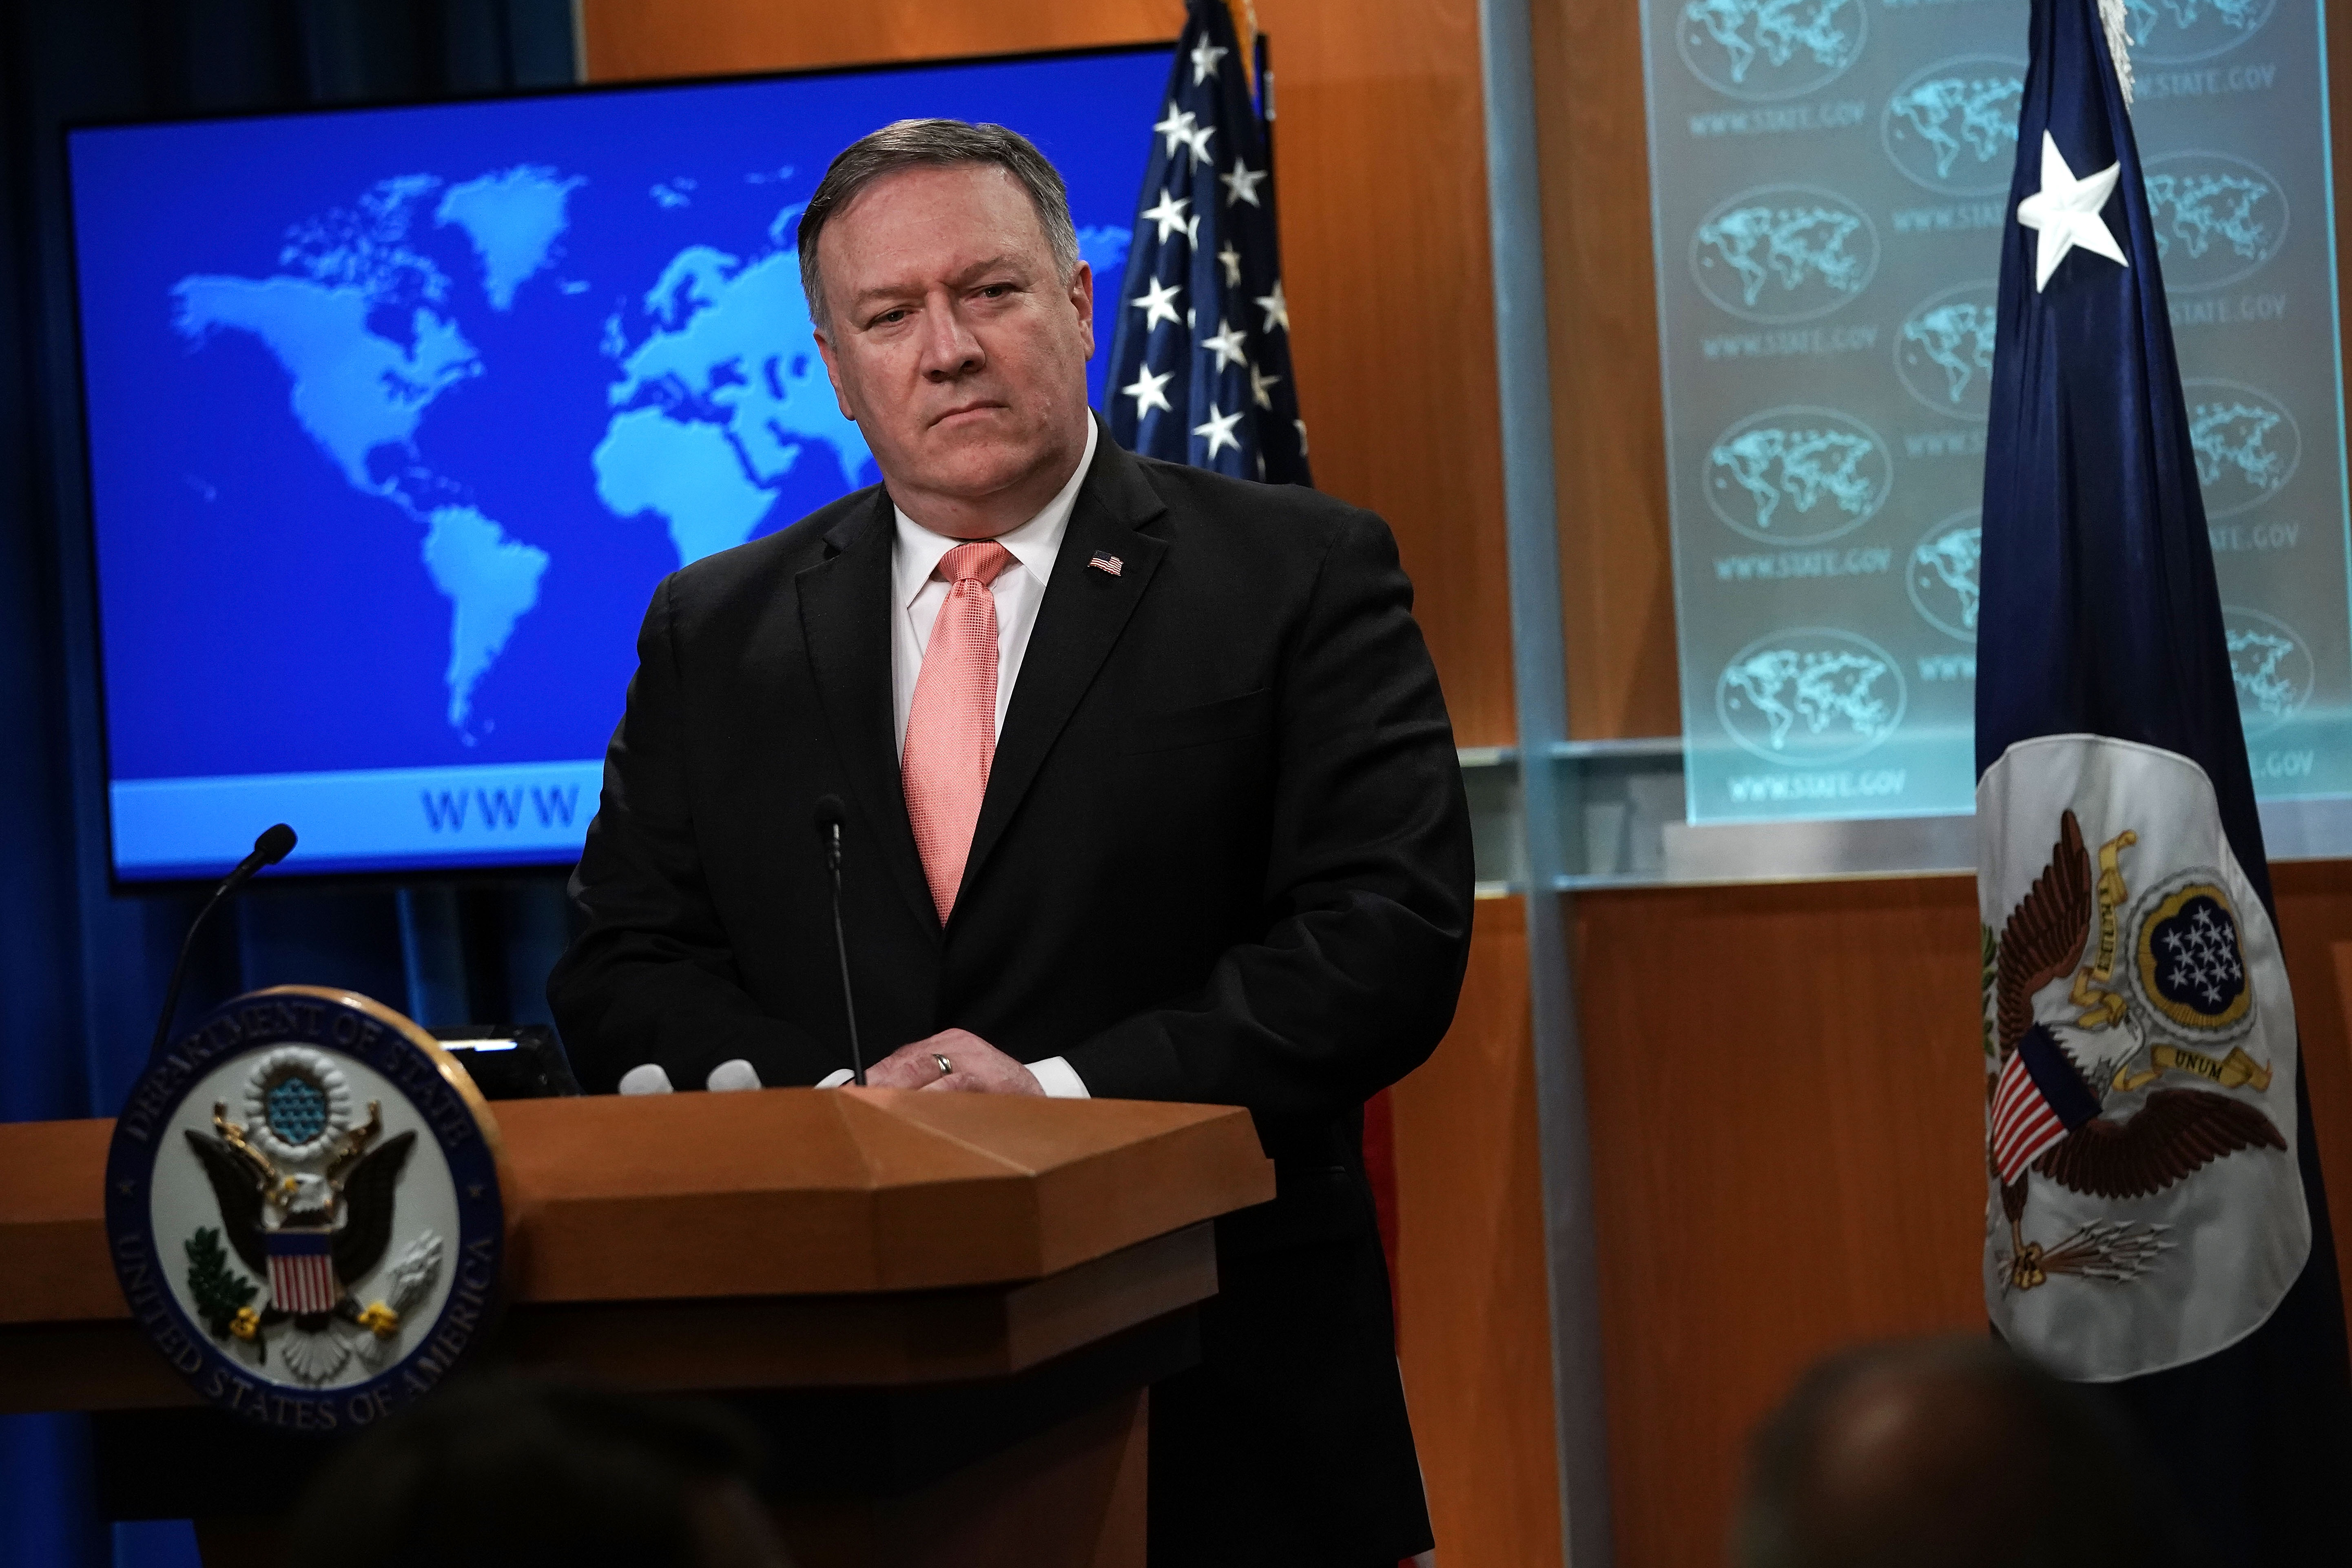 U.S. Secretary of State Mike Pompeo speaks to members of the media in the briefing room of the State Department Oct. 23, 2018 in Washington, D.C.